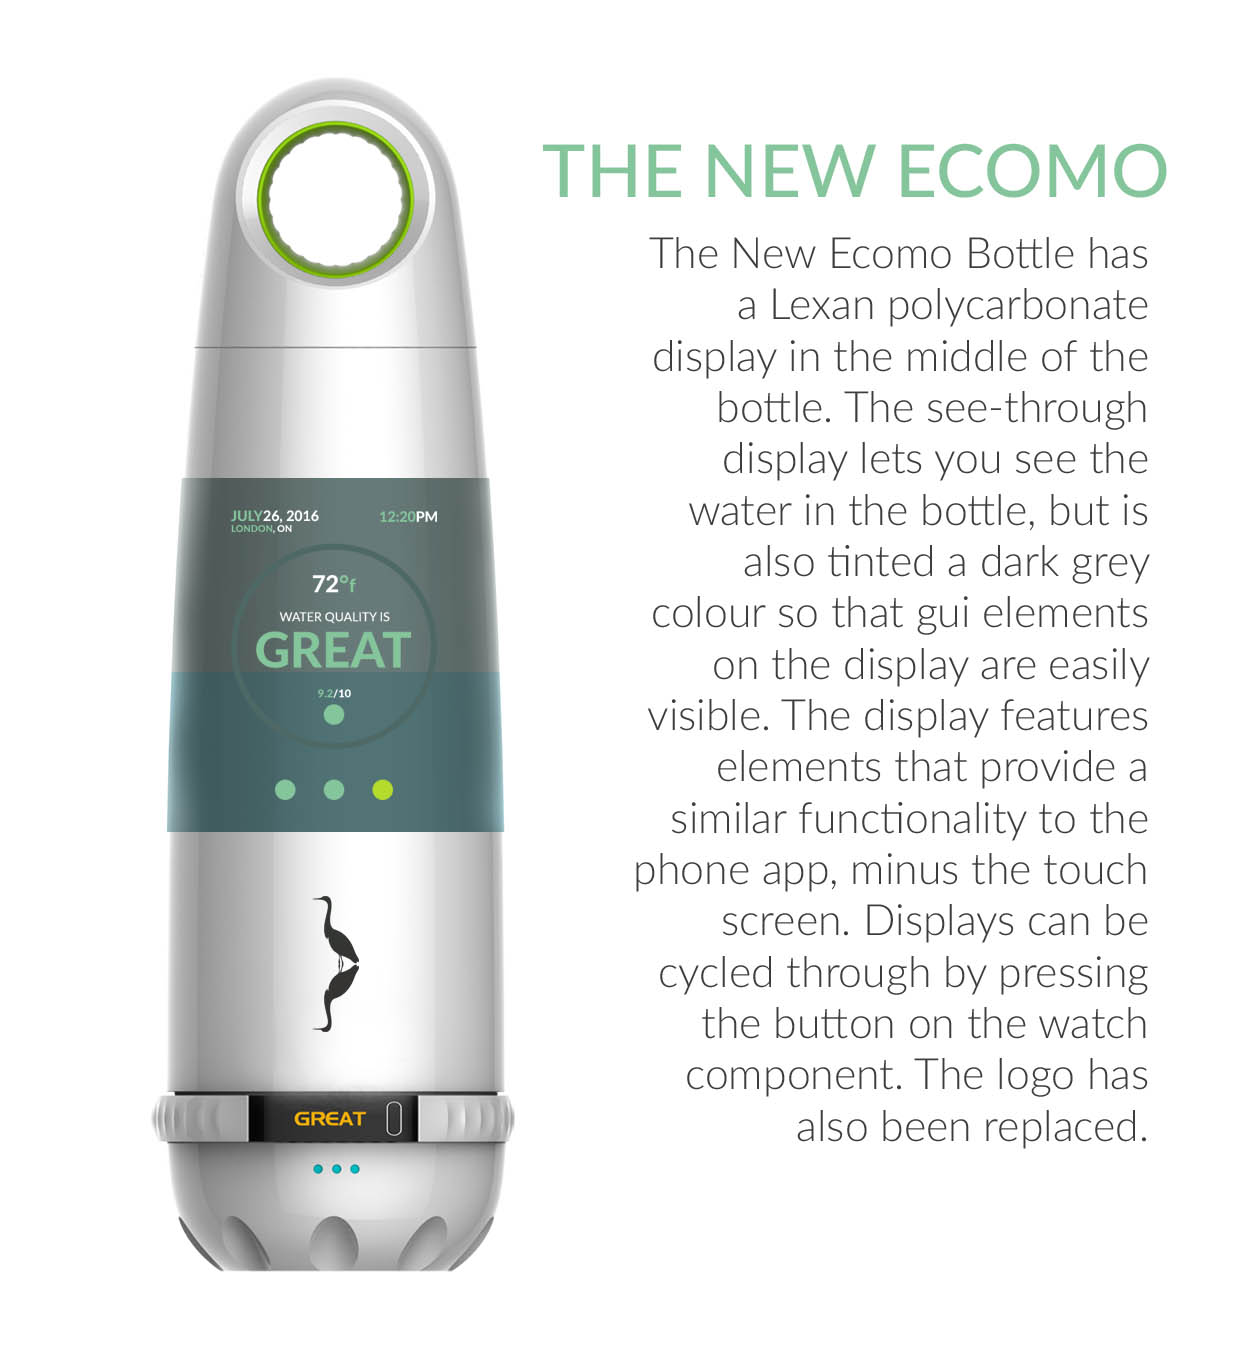 ecomo bottle redesign